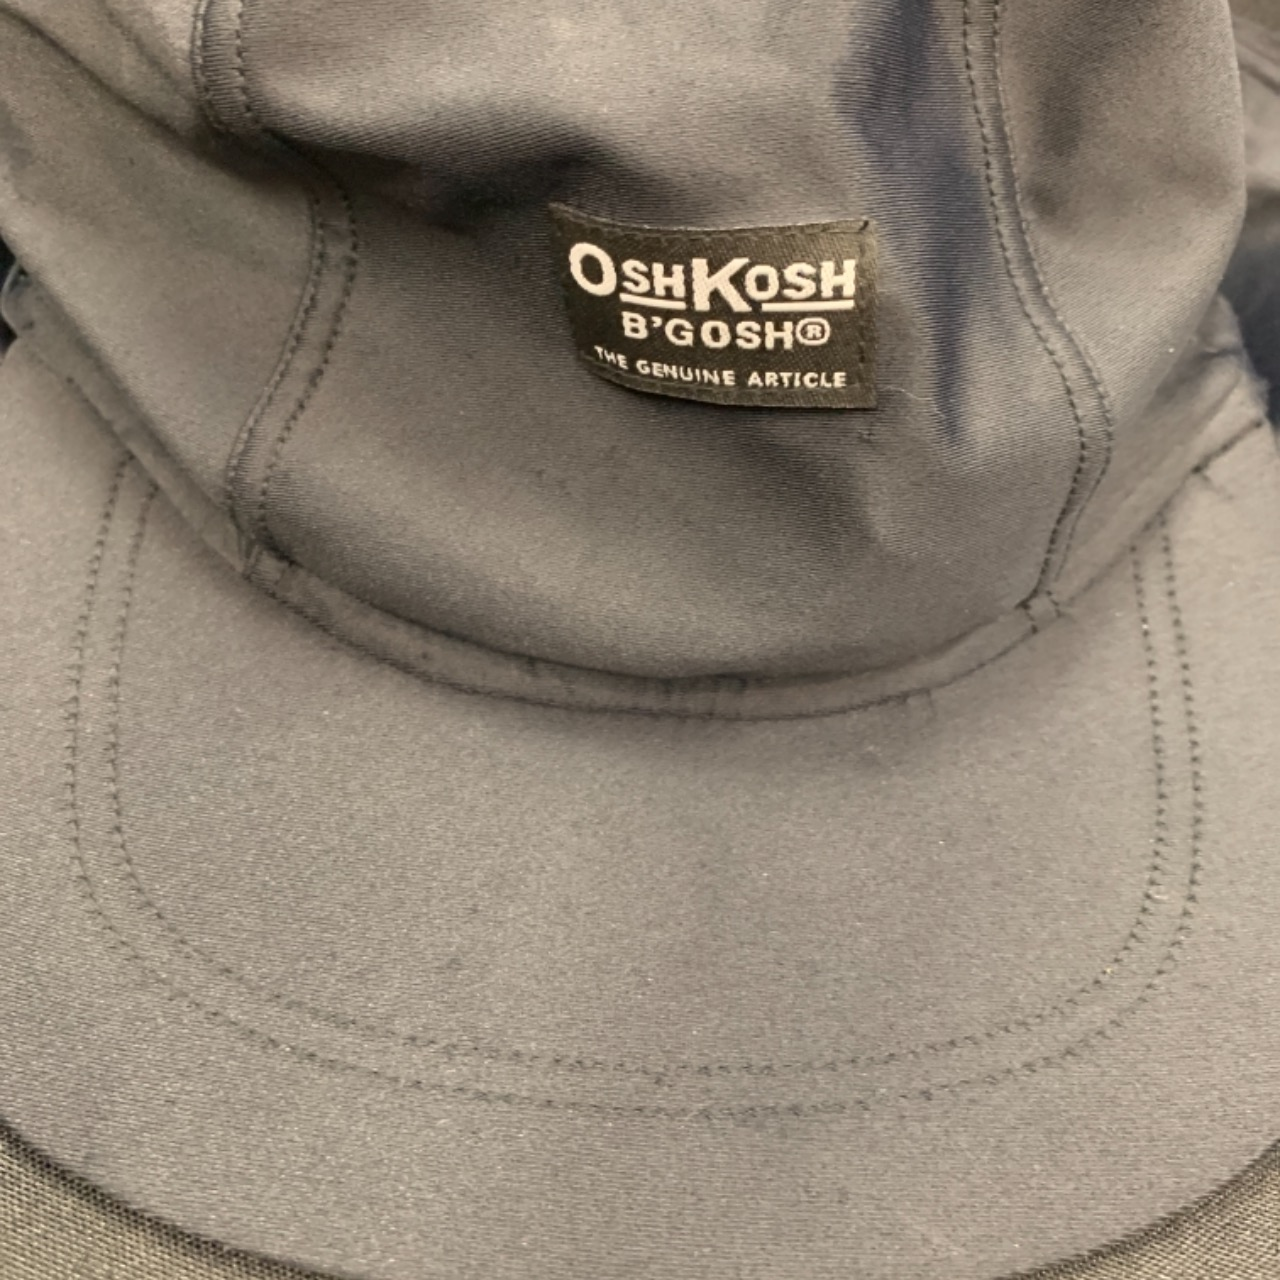 OshKosh Ultraviolet protection. Factor 50+ sun hat with neck cover